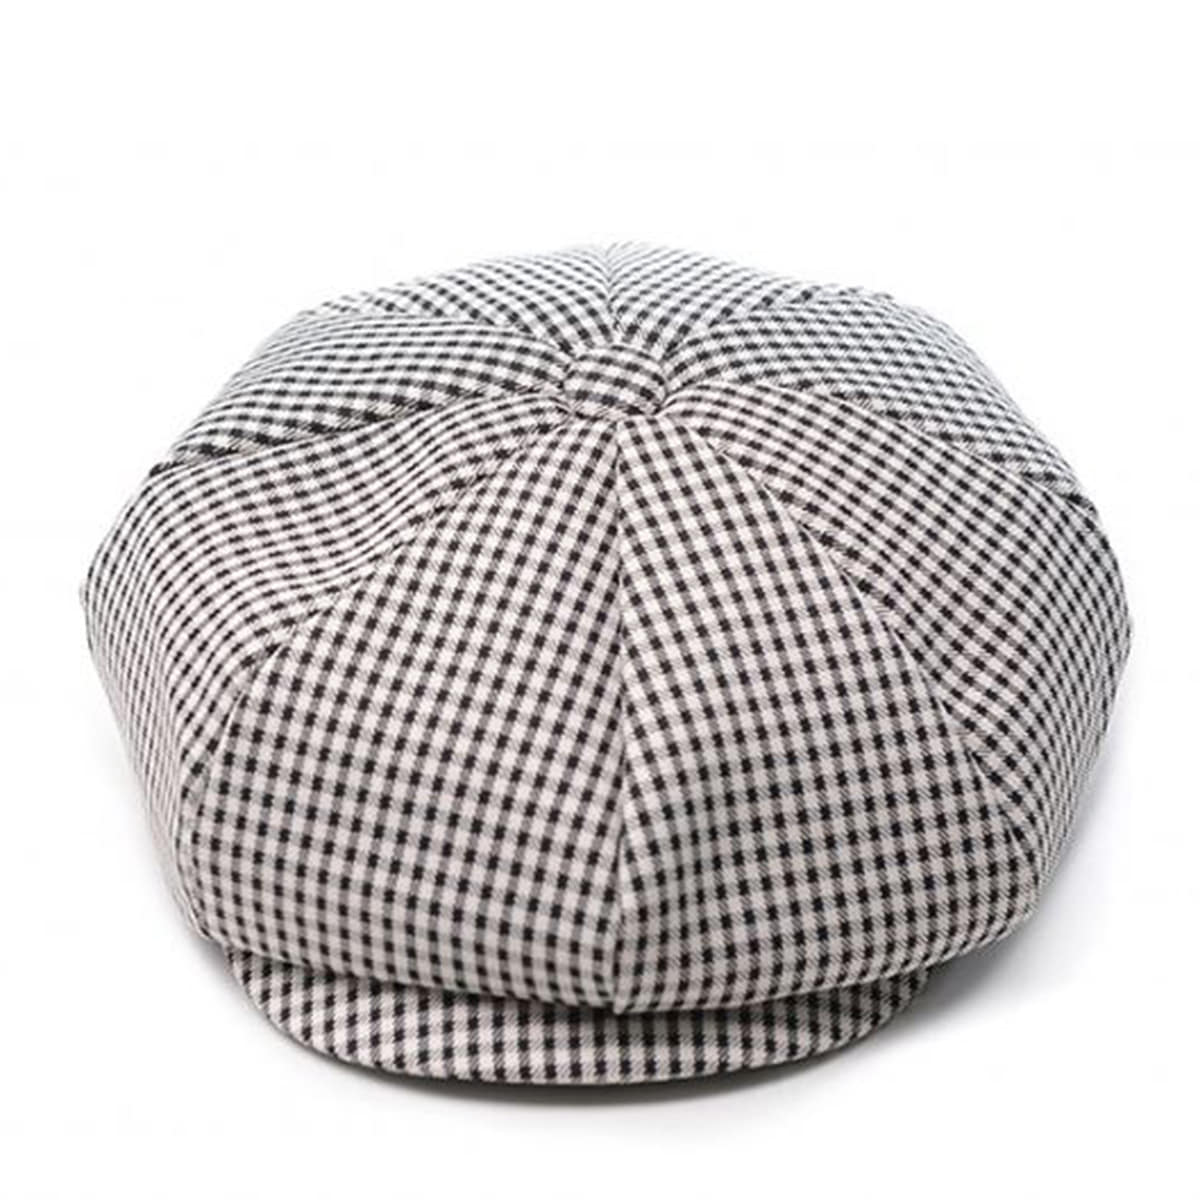 Millionairehats - (Rayon gingham check 3pack)- CLASSIC BIG APPLE HAT